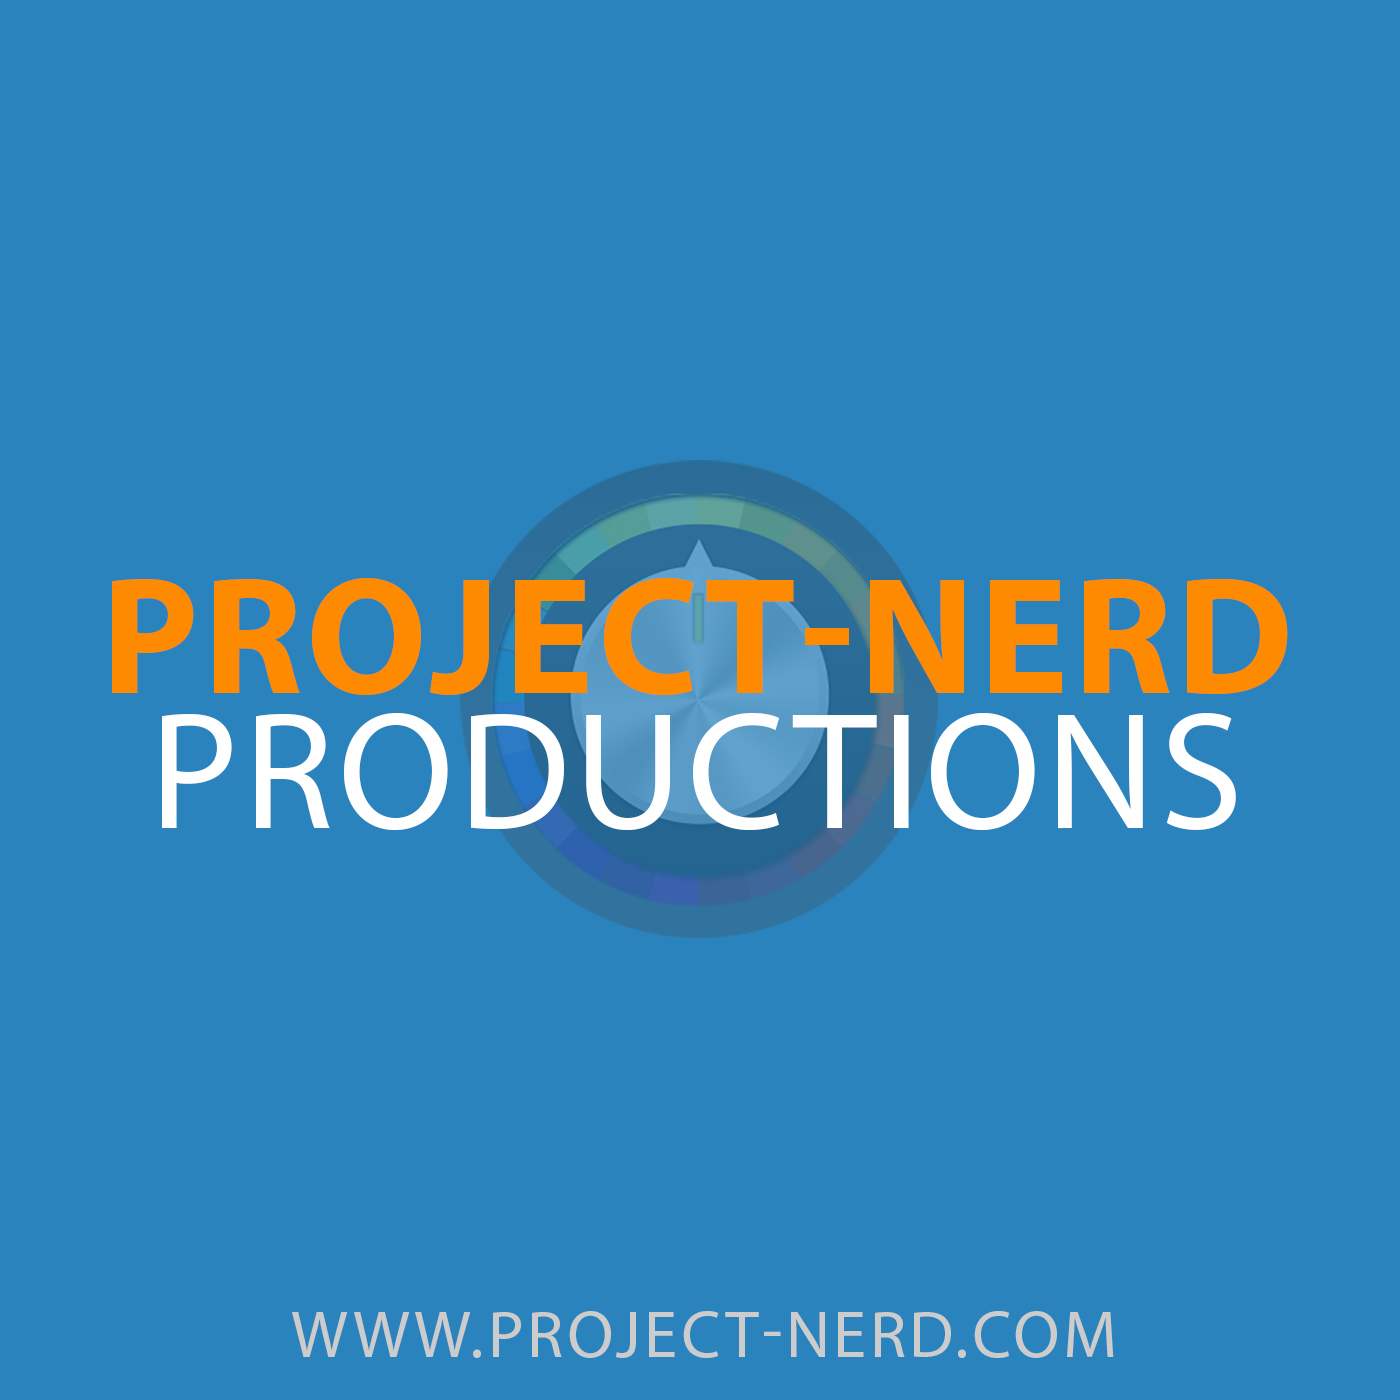 PROJECT-NERD PODCASTS